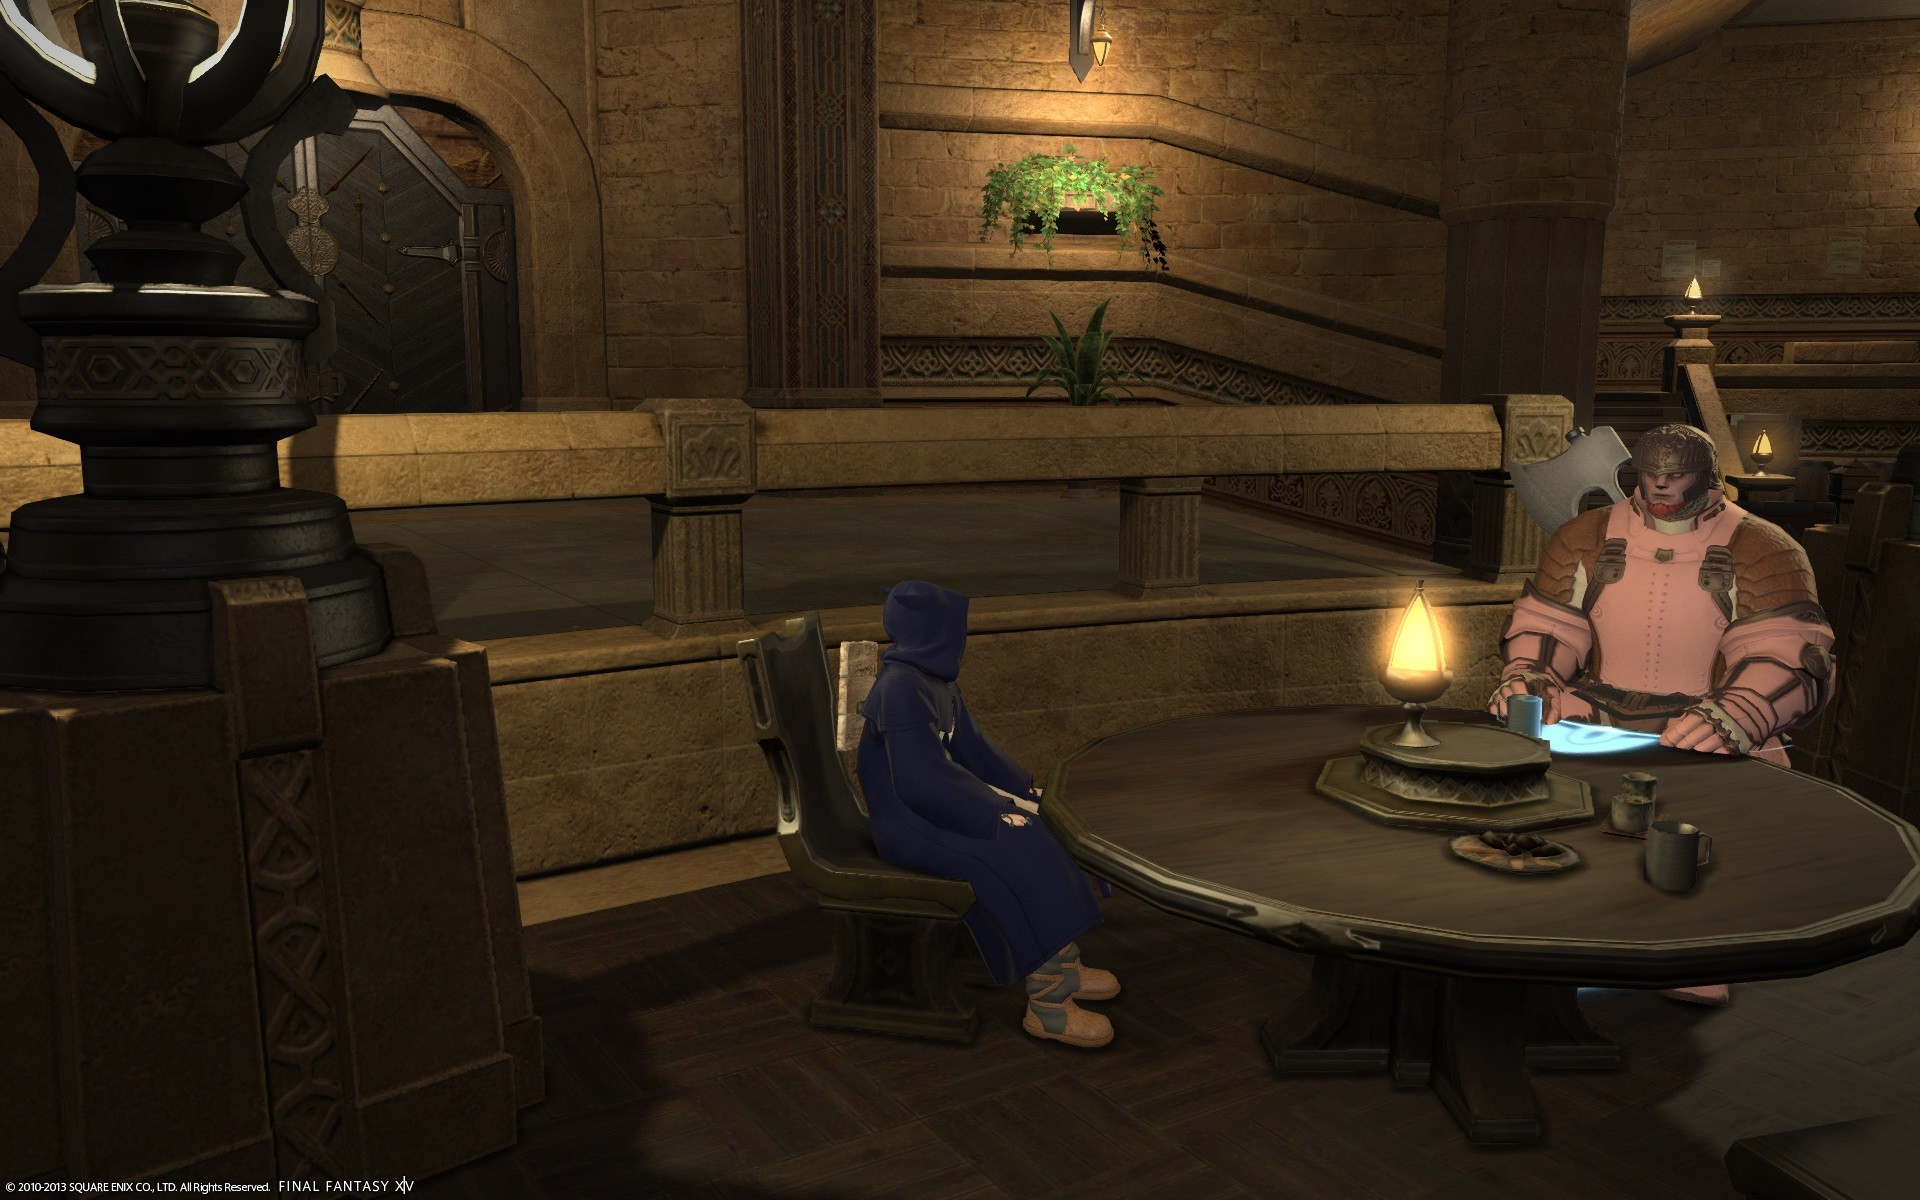 Final Fantasy XIV: A Realm Reborn - Sitting in chairs is cool, like a Fez.